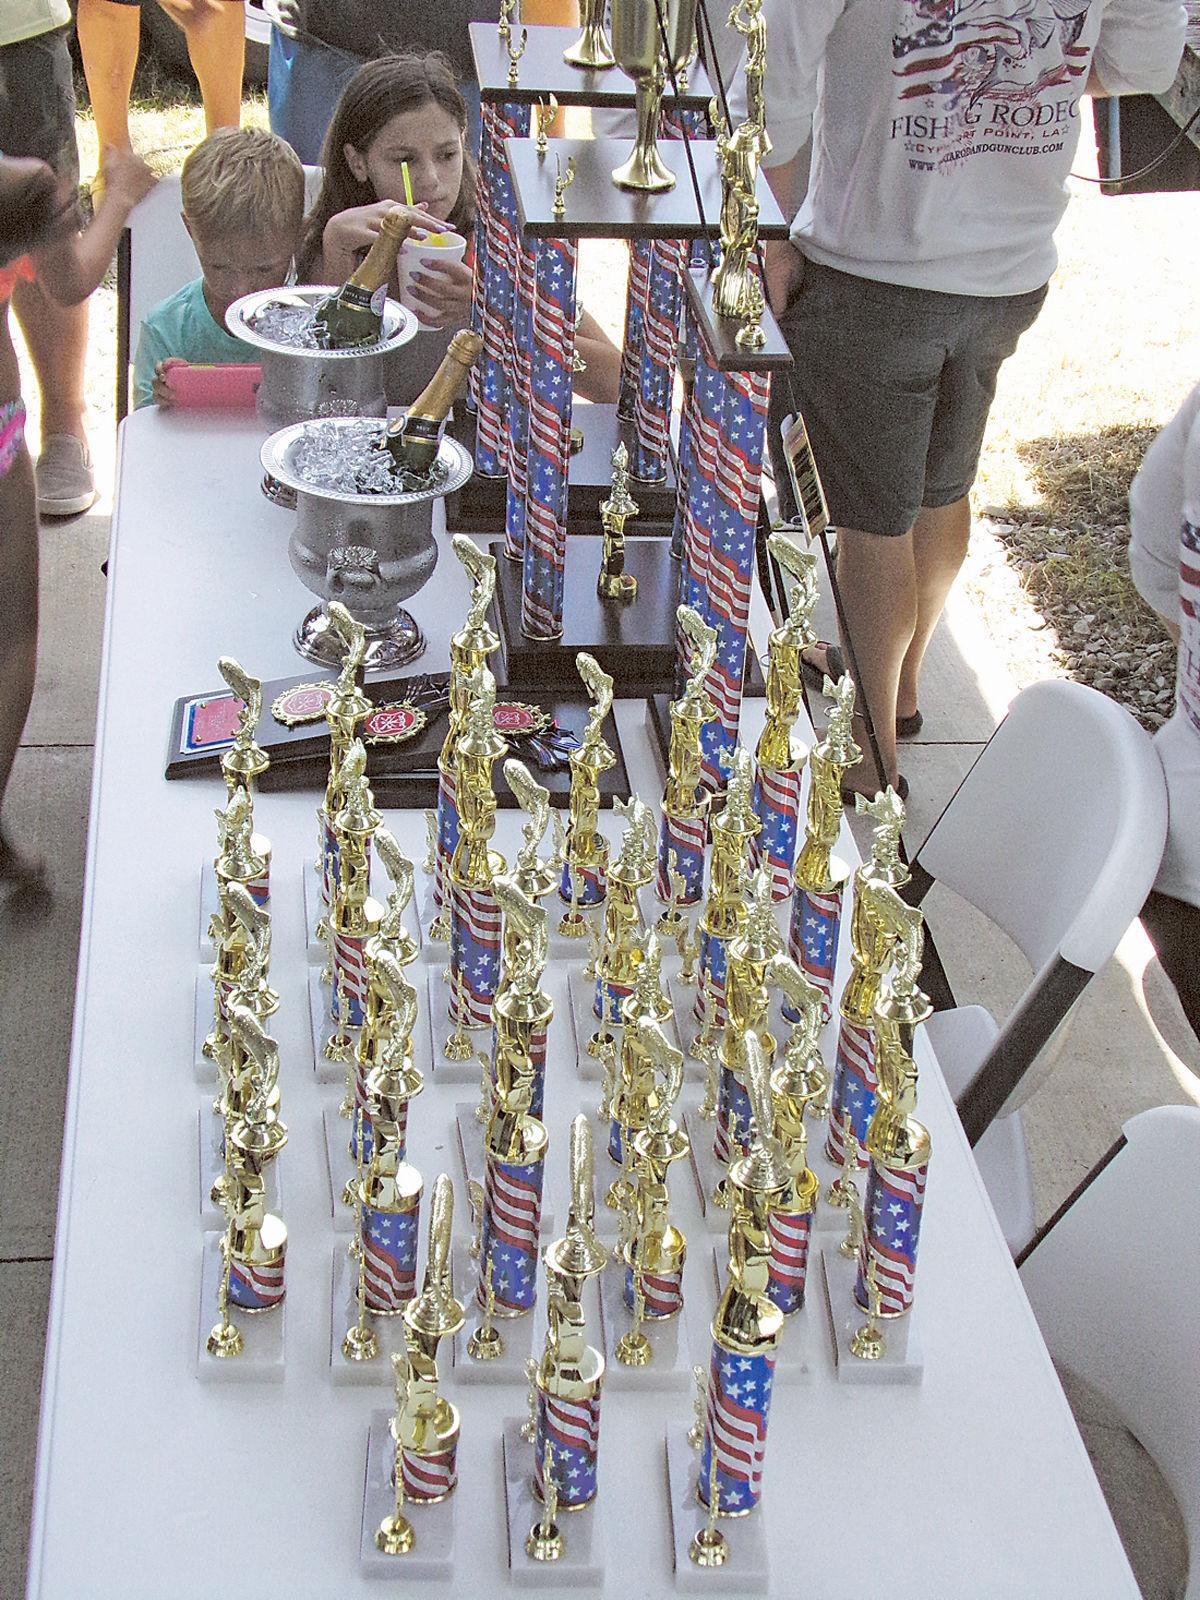 Fishing rodeo fun nears for area anglers